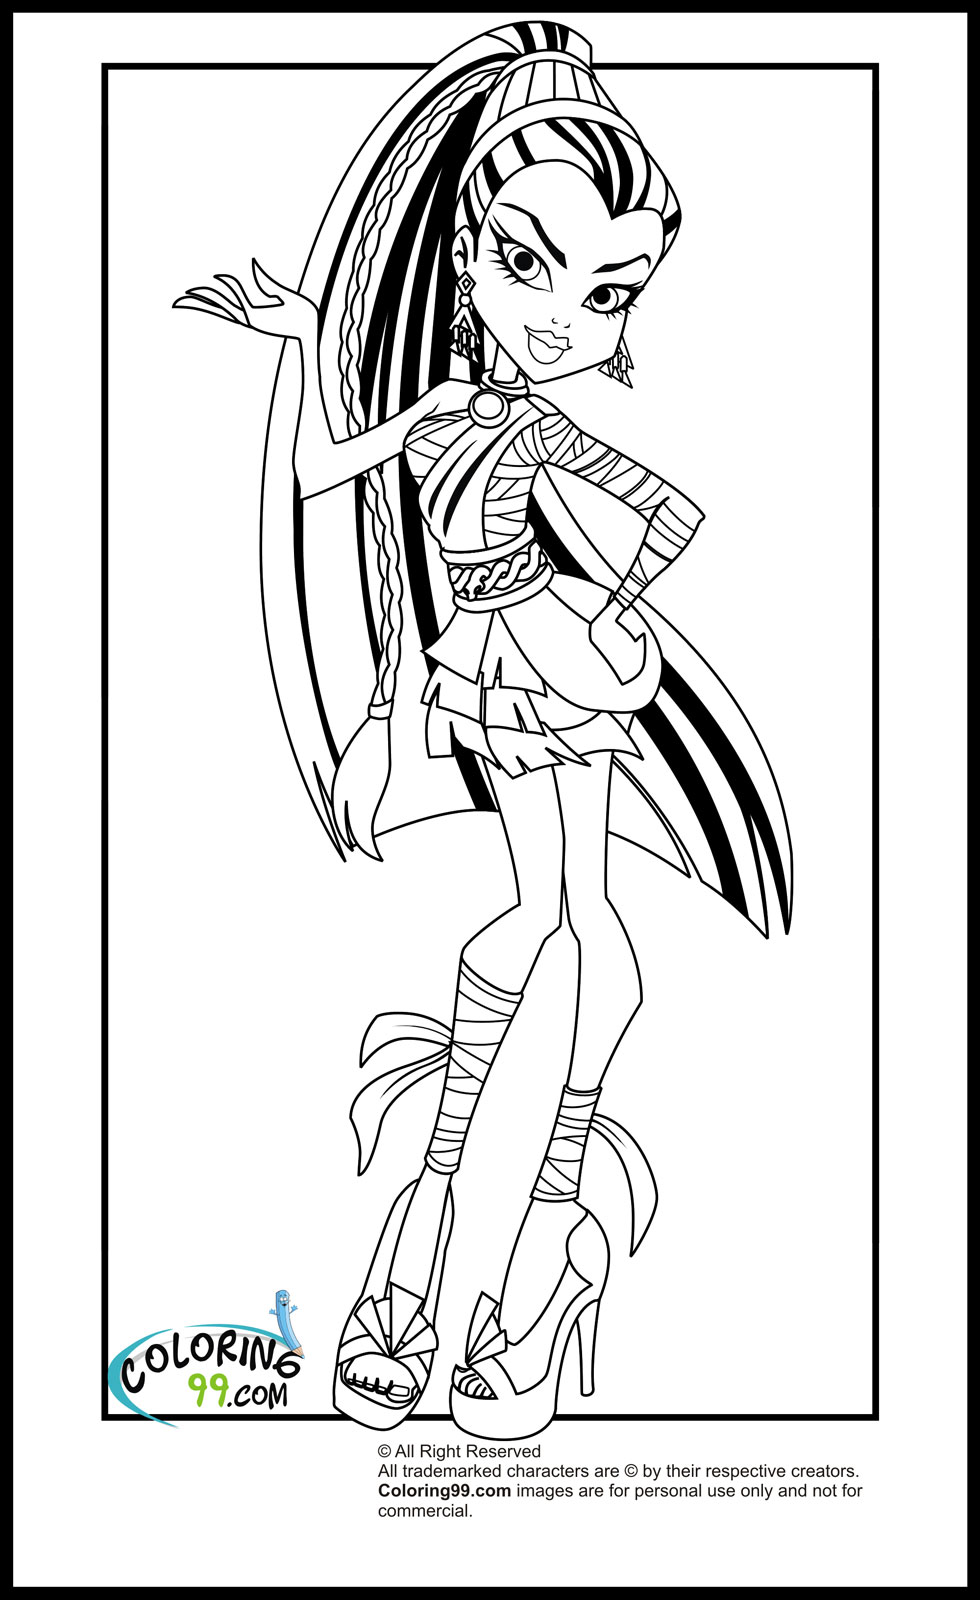 monster high coloring pages print print download monster high coloring pages printable pages high coloring monster print